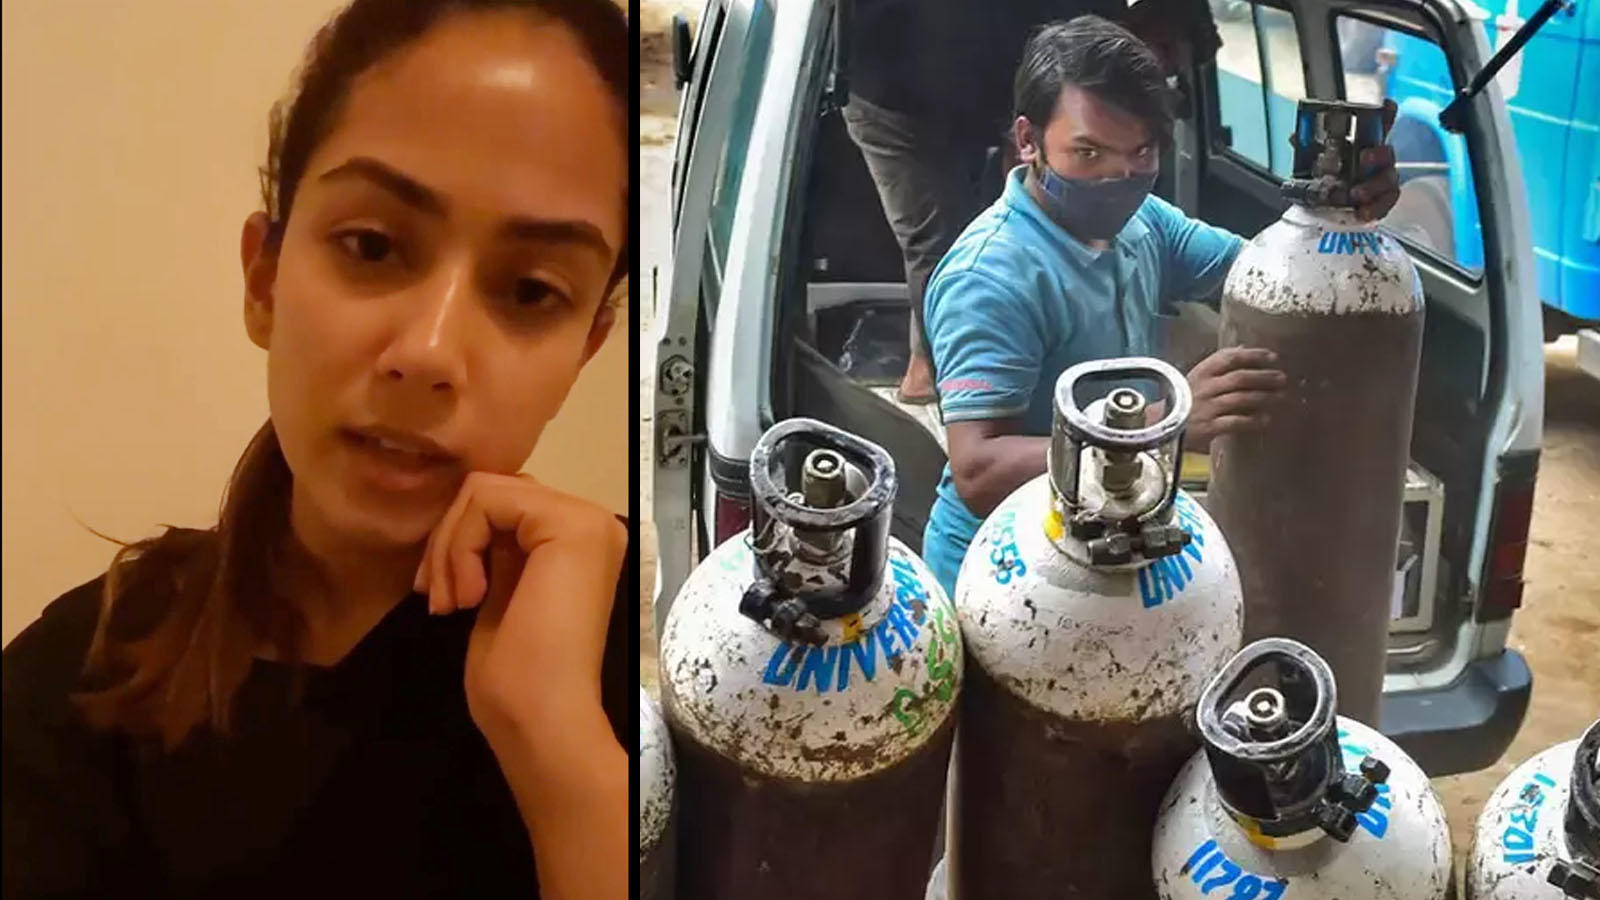 Shahid Kapoor's wife Mira Rajput urges people to 'be the voice of others' amid COVID-19 pandemic | Hindi Movie News – Bollywood – Times of India